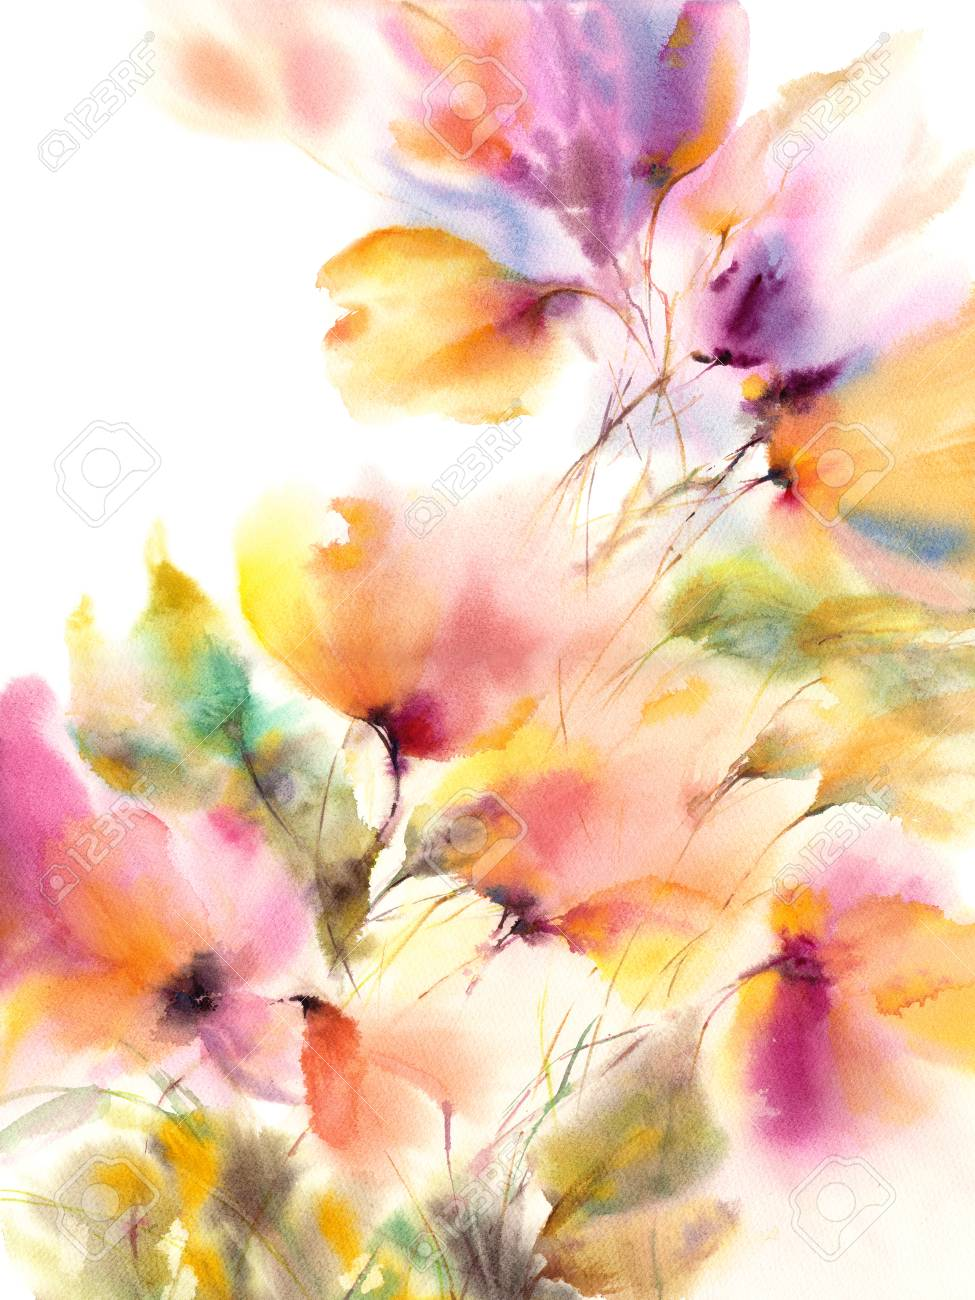 Floral Background Watercolor Floral Painting Delocate Colorful